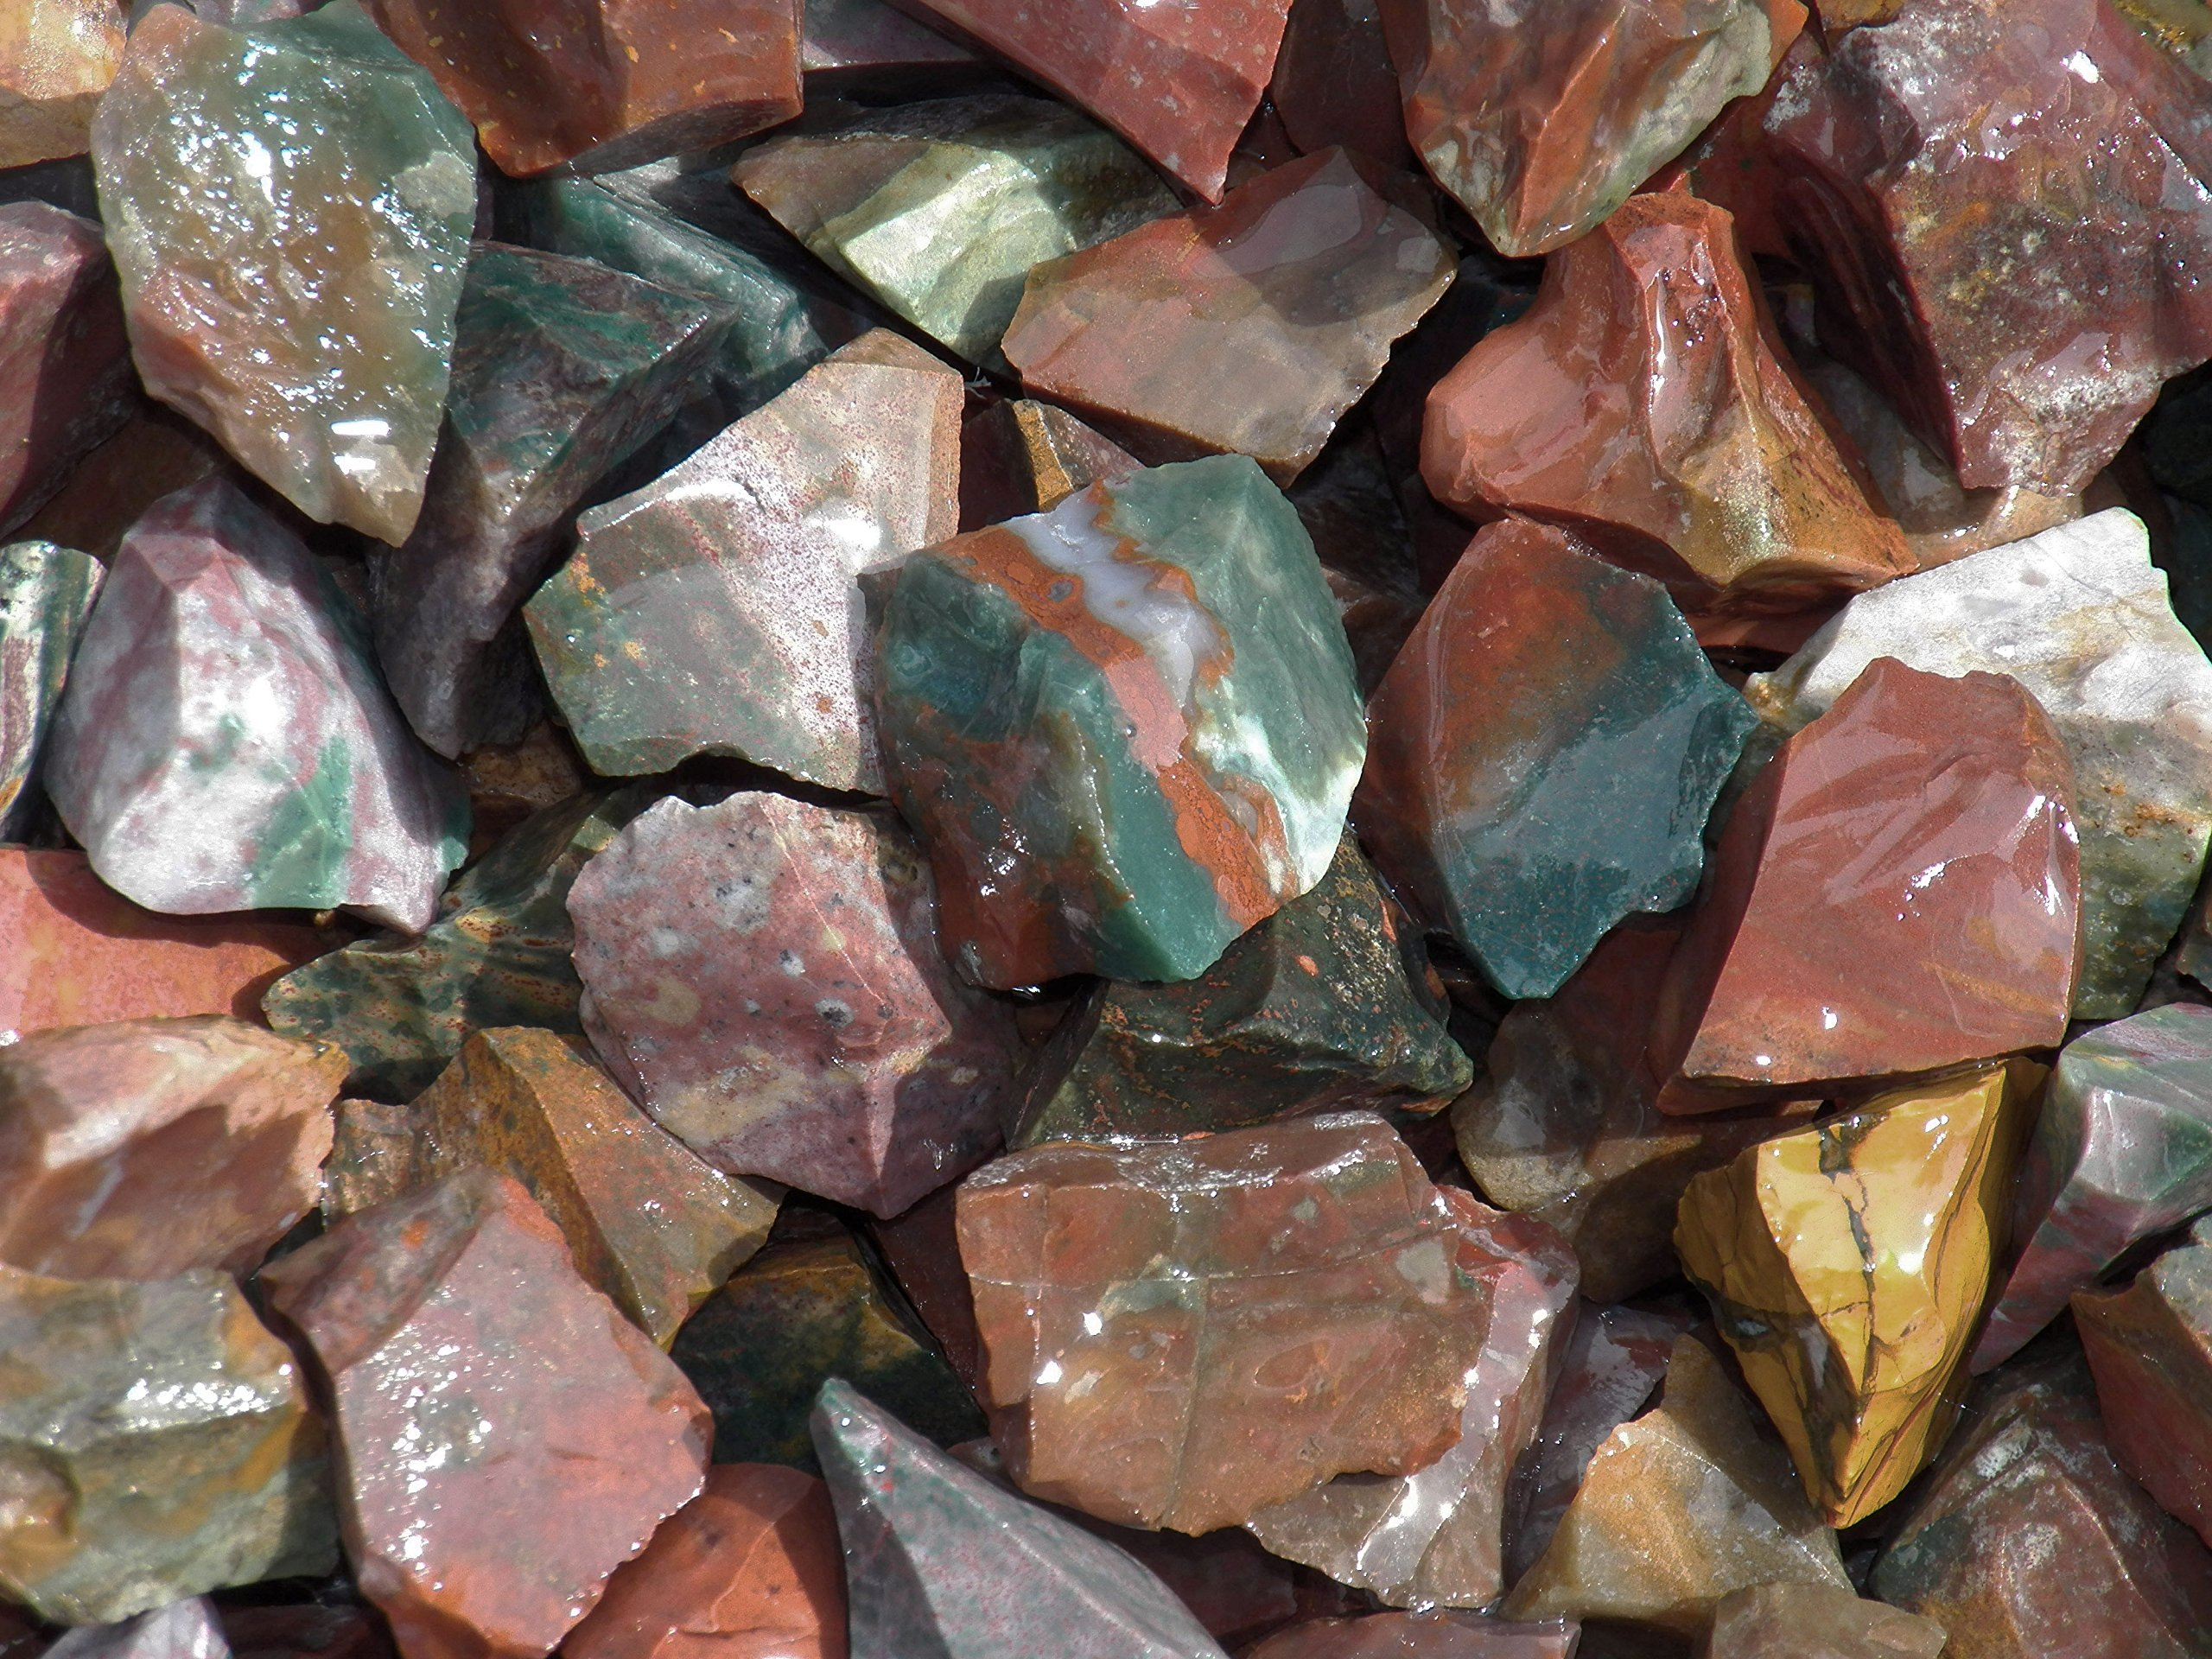 Fundamental Rockhound Products: Rough FANCY JASPER Natural Bulk Rock for Tumbling, Metaphysical Use, Gemstones Healing Crystals * Wholesale Lot * ... from India (2 lb)